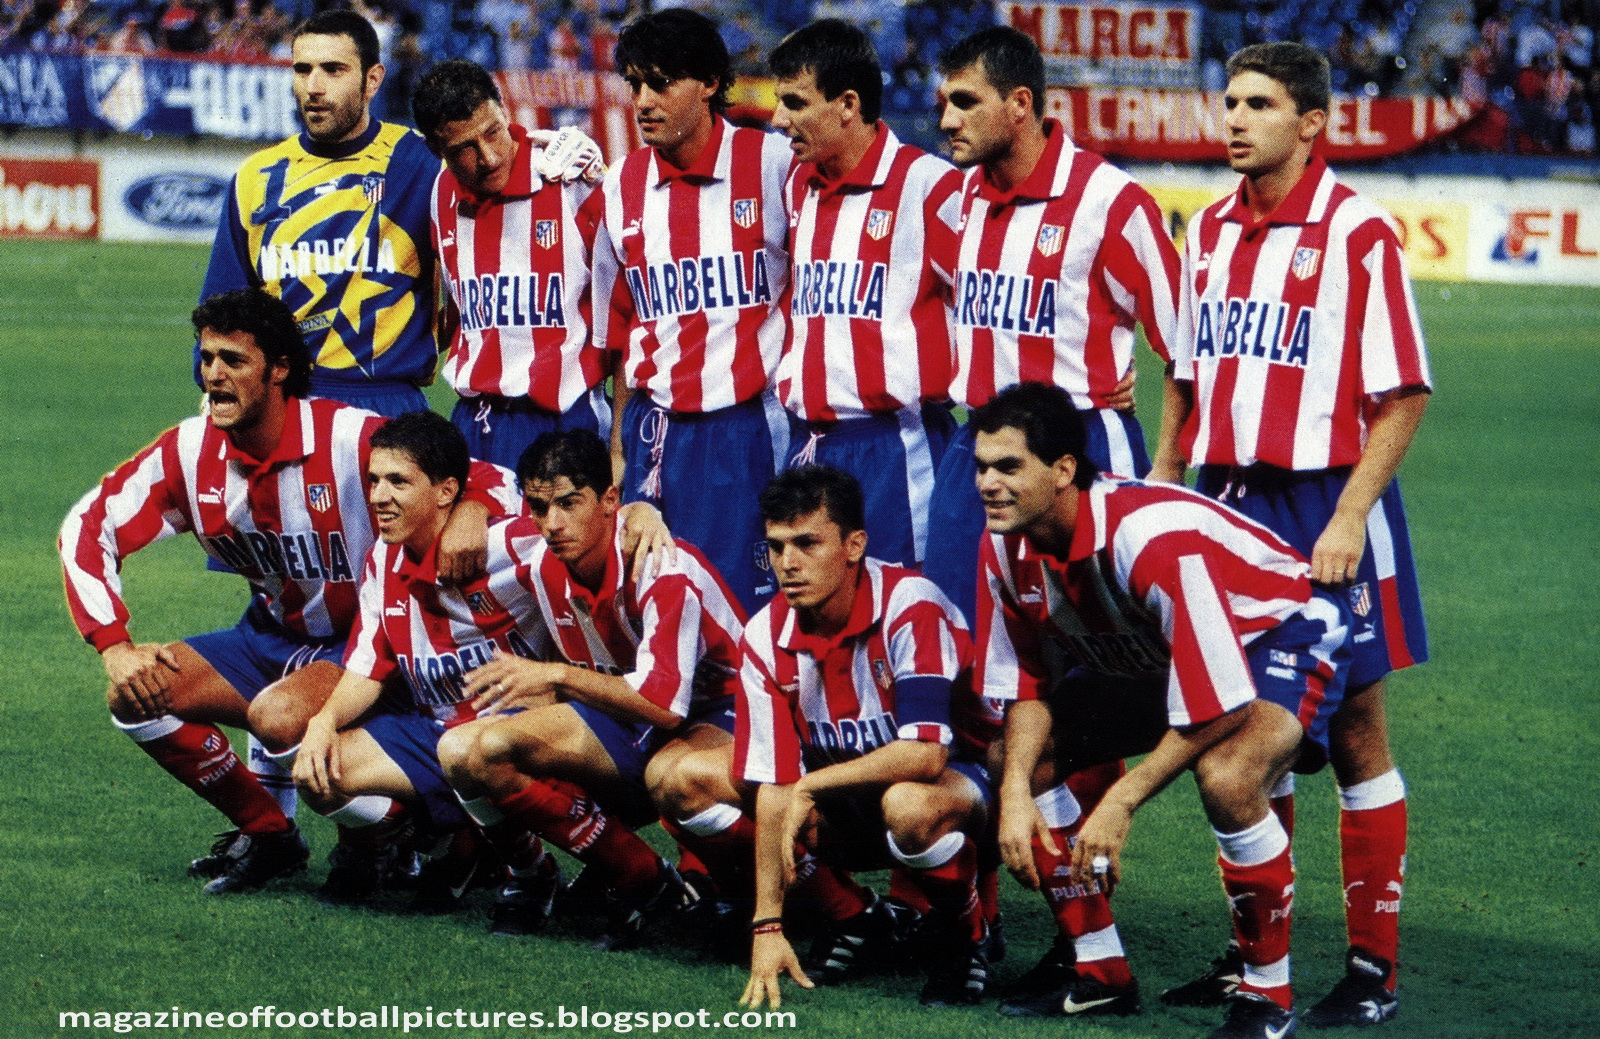 Atletico Madrid 1997